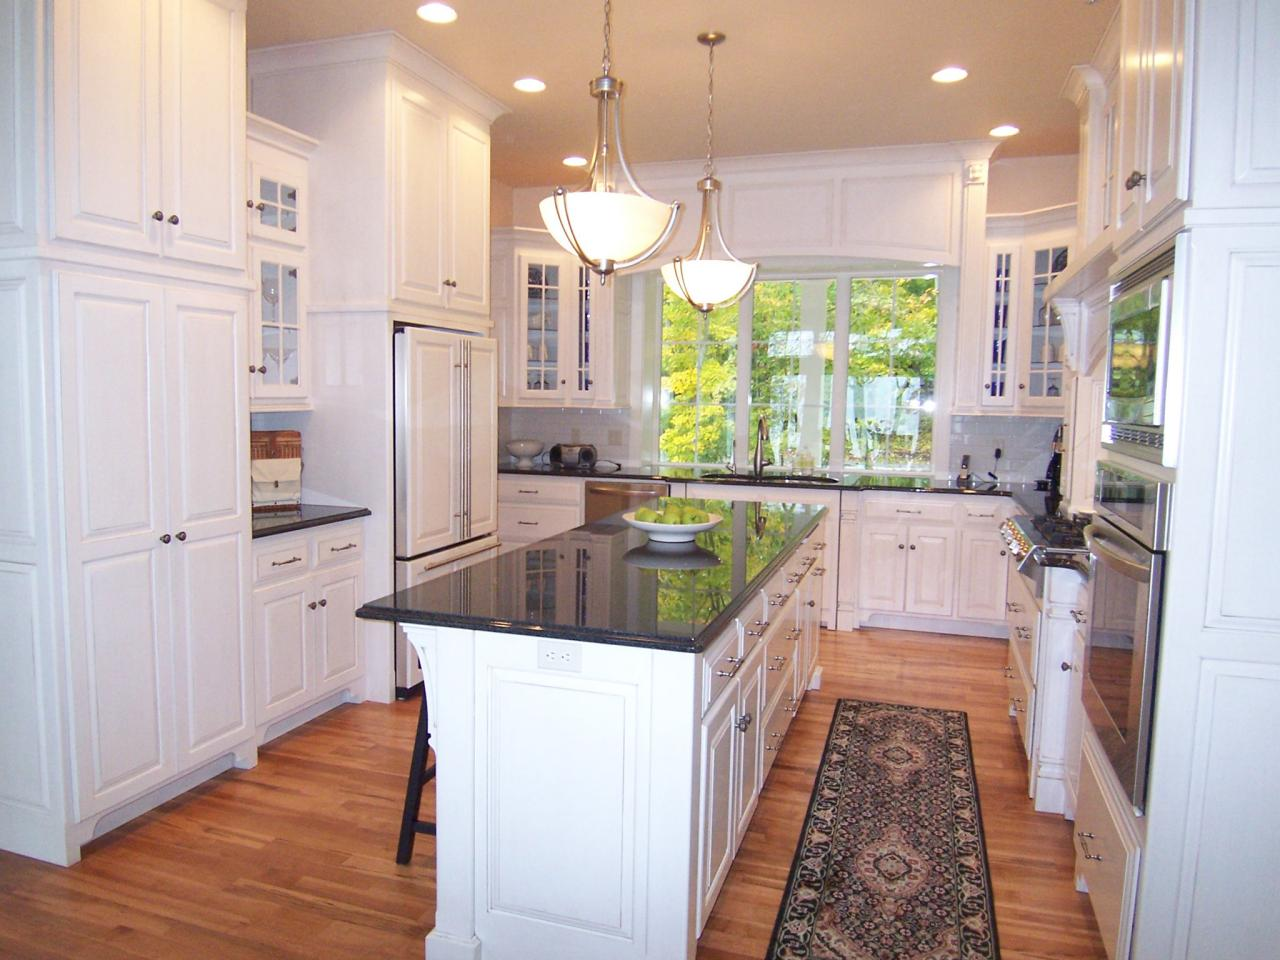 U shaped kitchen design ideas pictures ideas from hgtv for Kitchen design 9